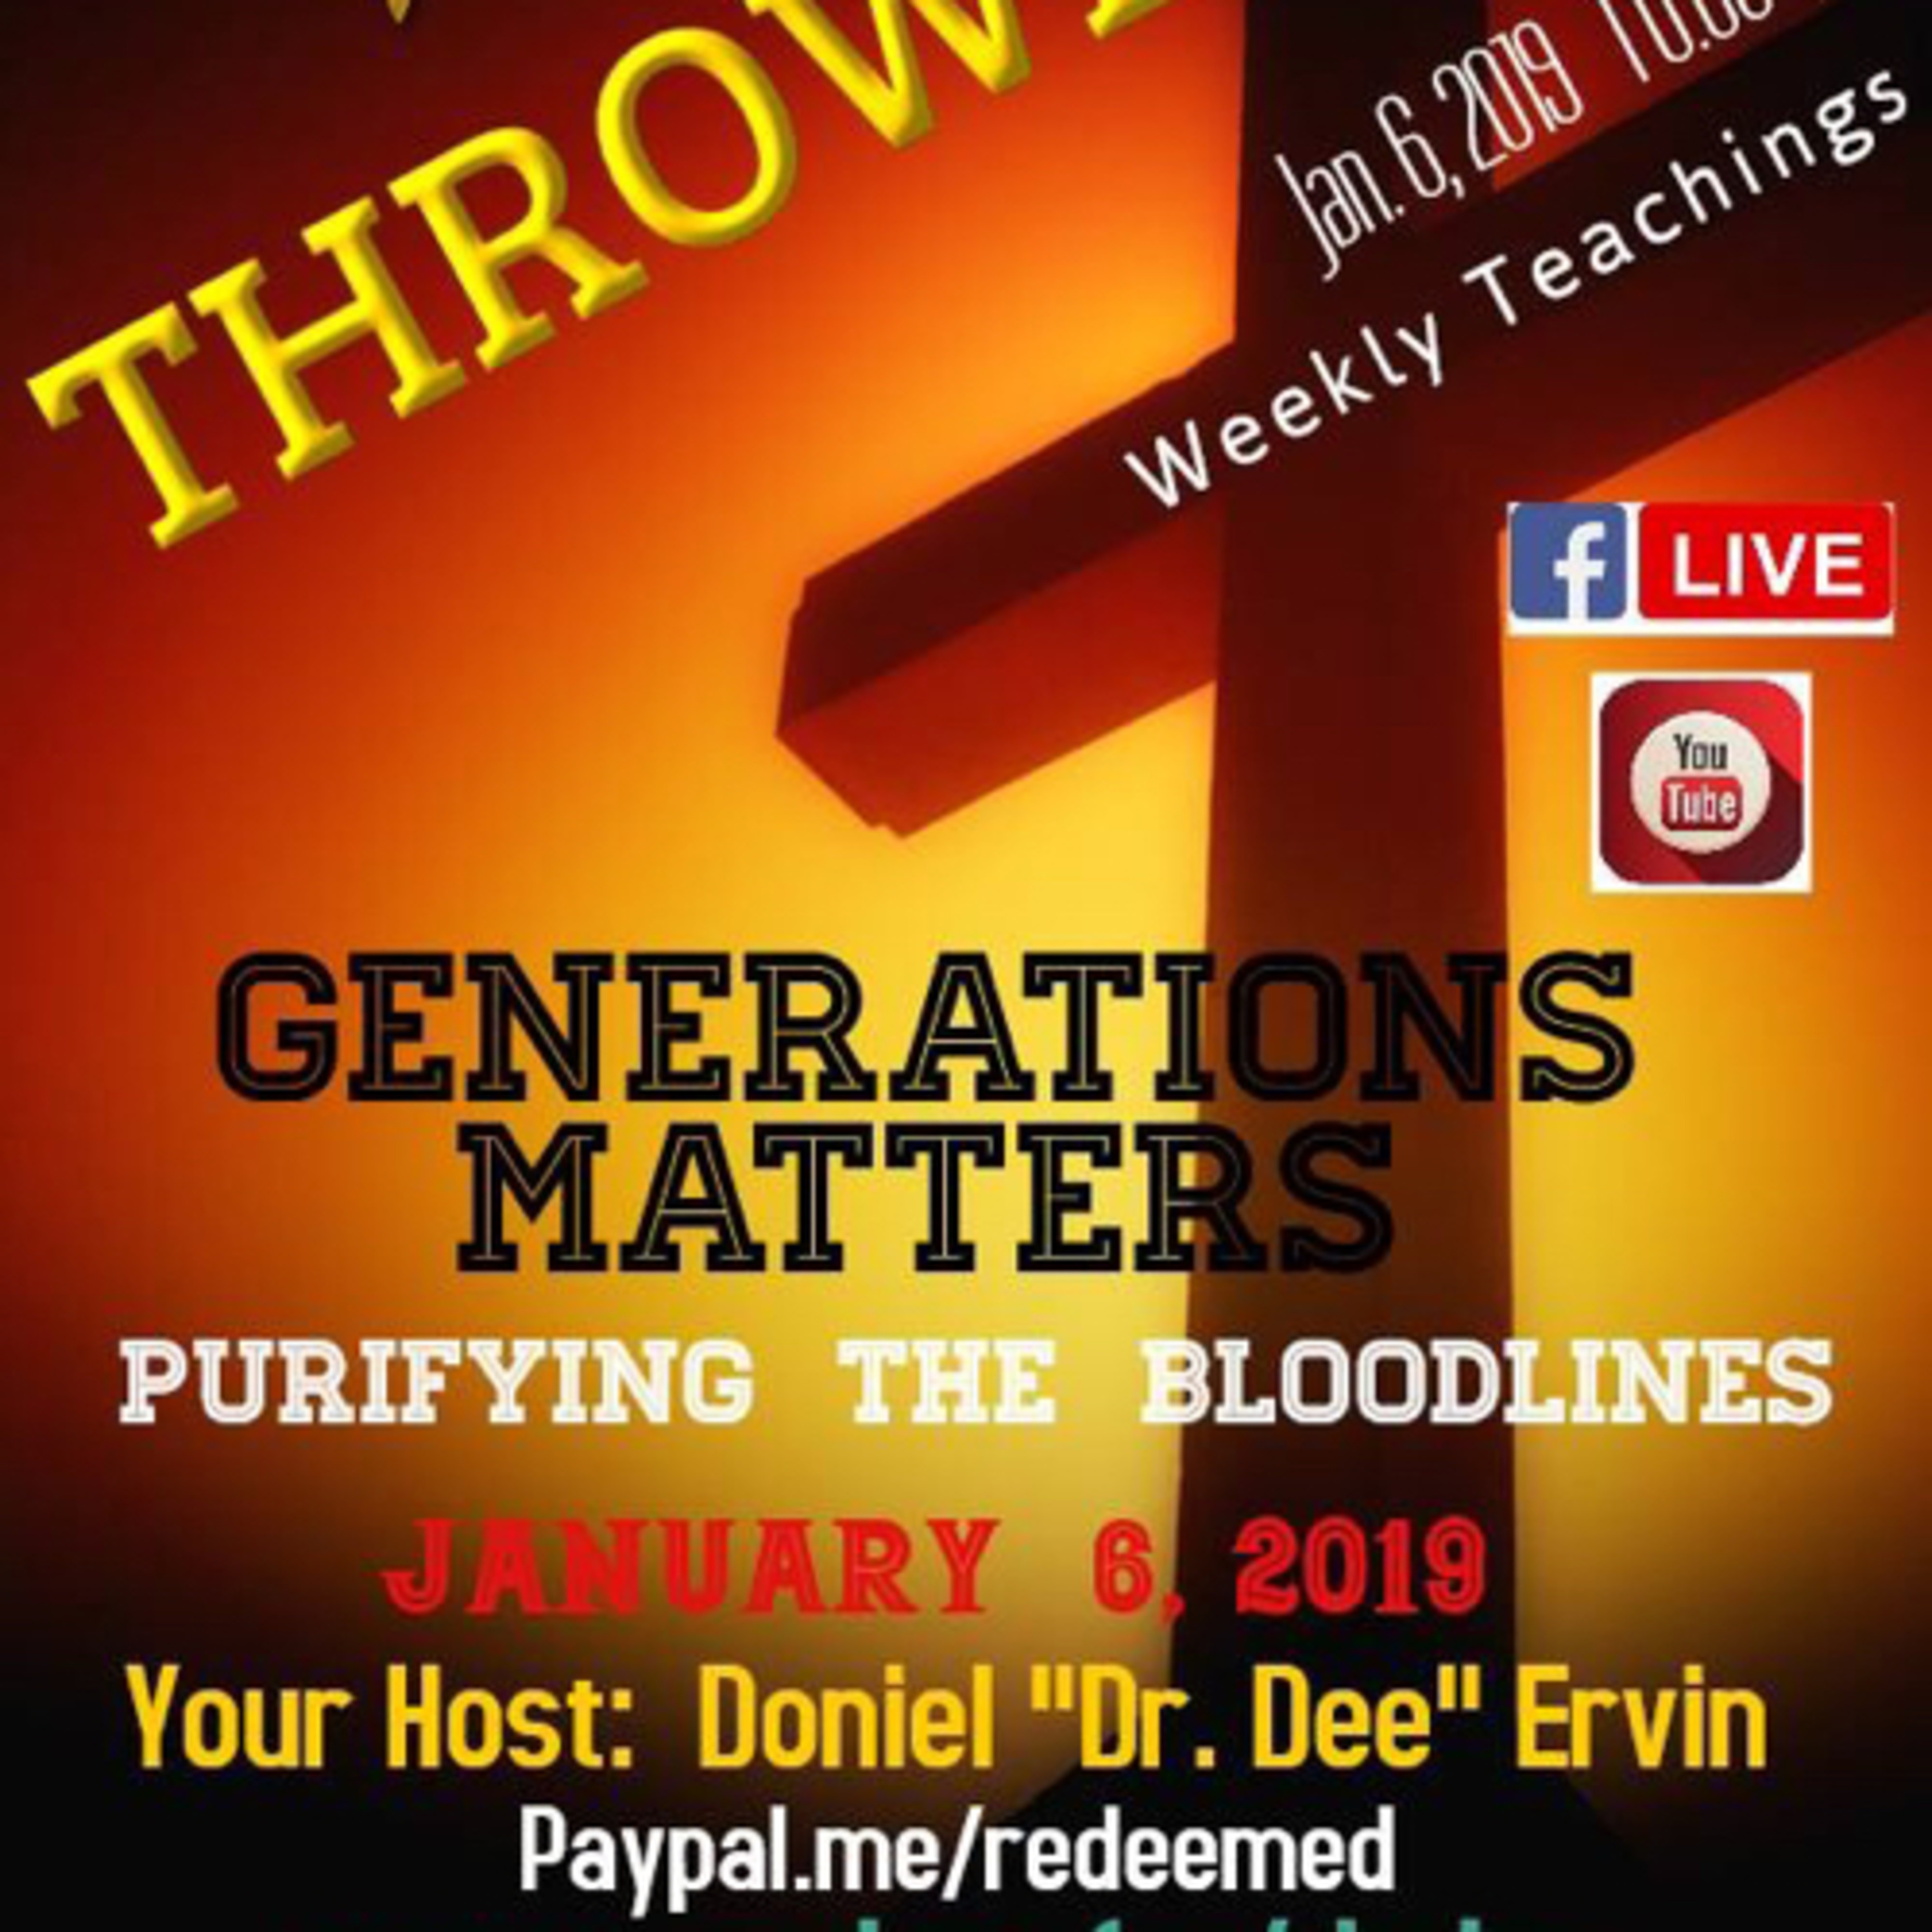 The Real-Generation Matters PurifyingBloodlines:Deliverance